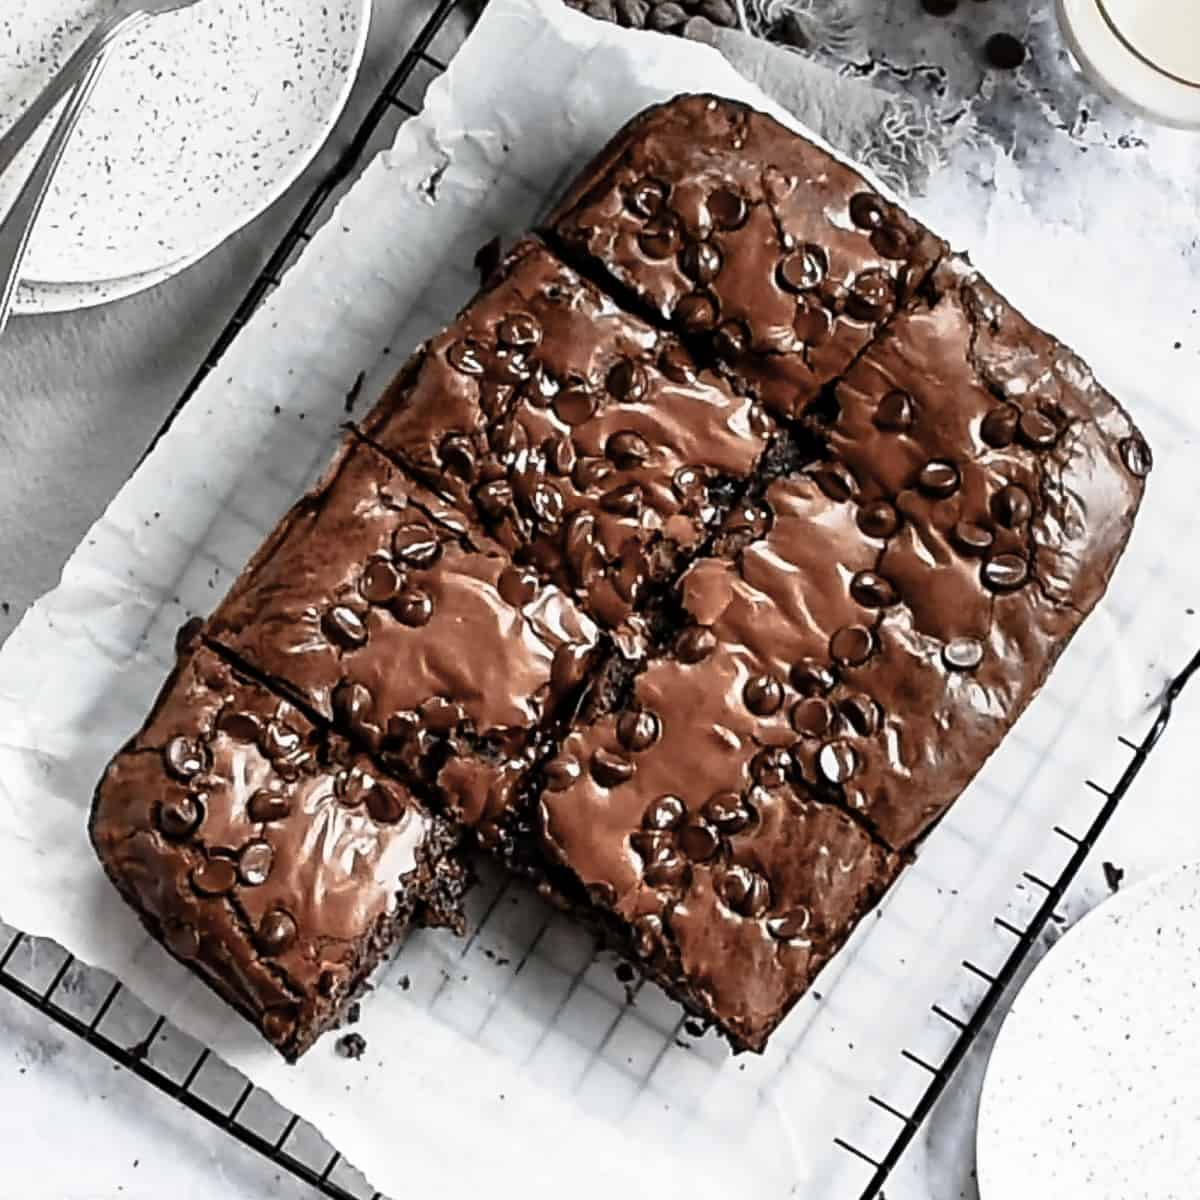 Brownies on a cooling rack with one already cut out and missing.